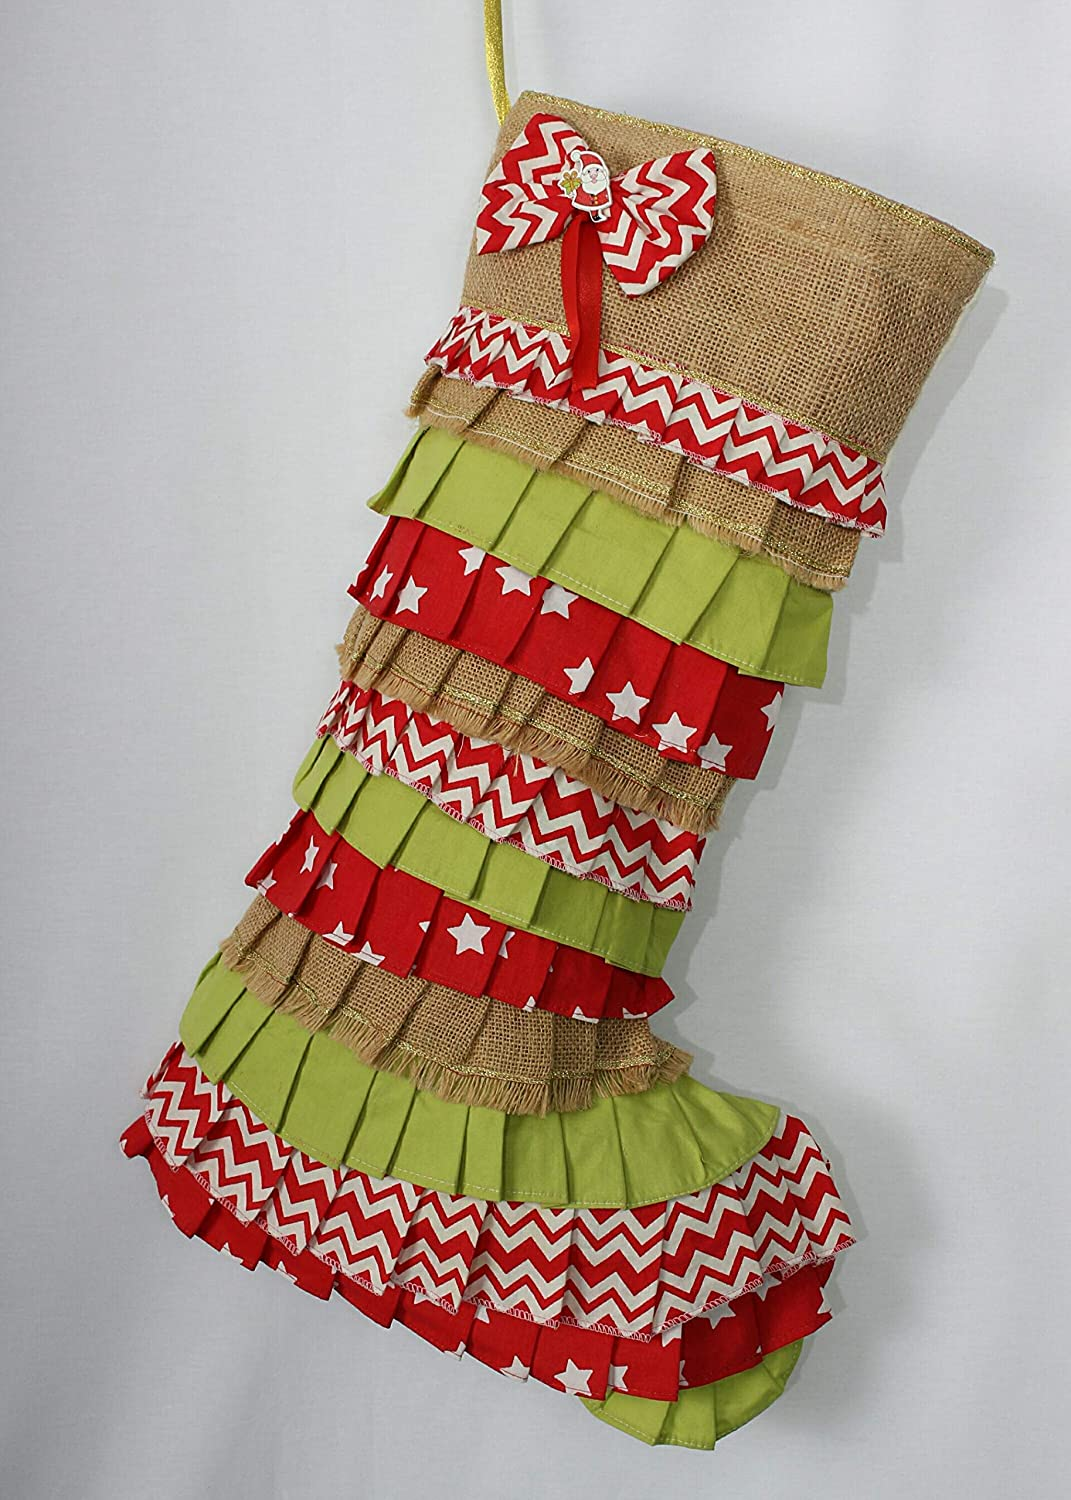 Ruffle Indianapolis Mall Christmas Stocking Chevron Decor Red Credence